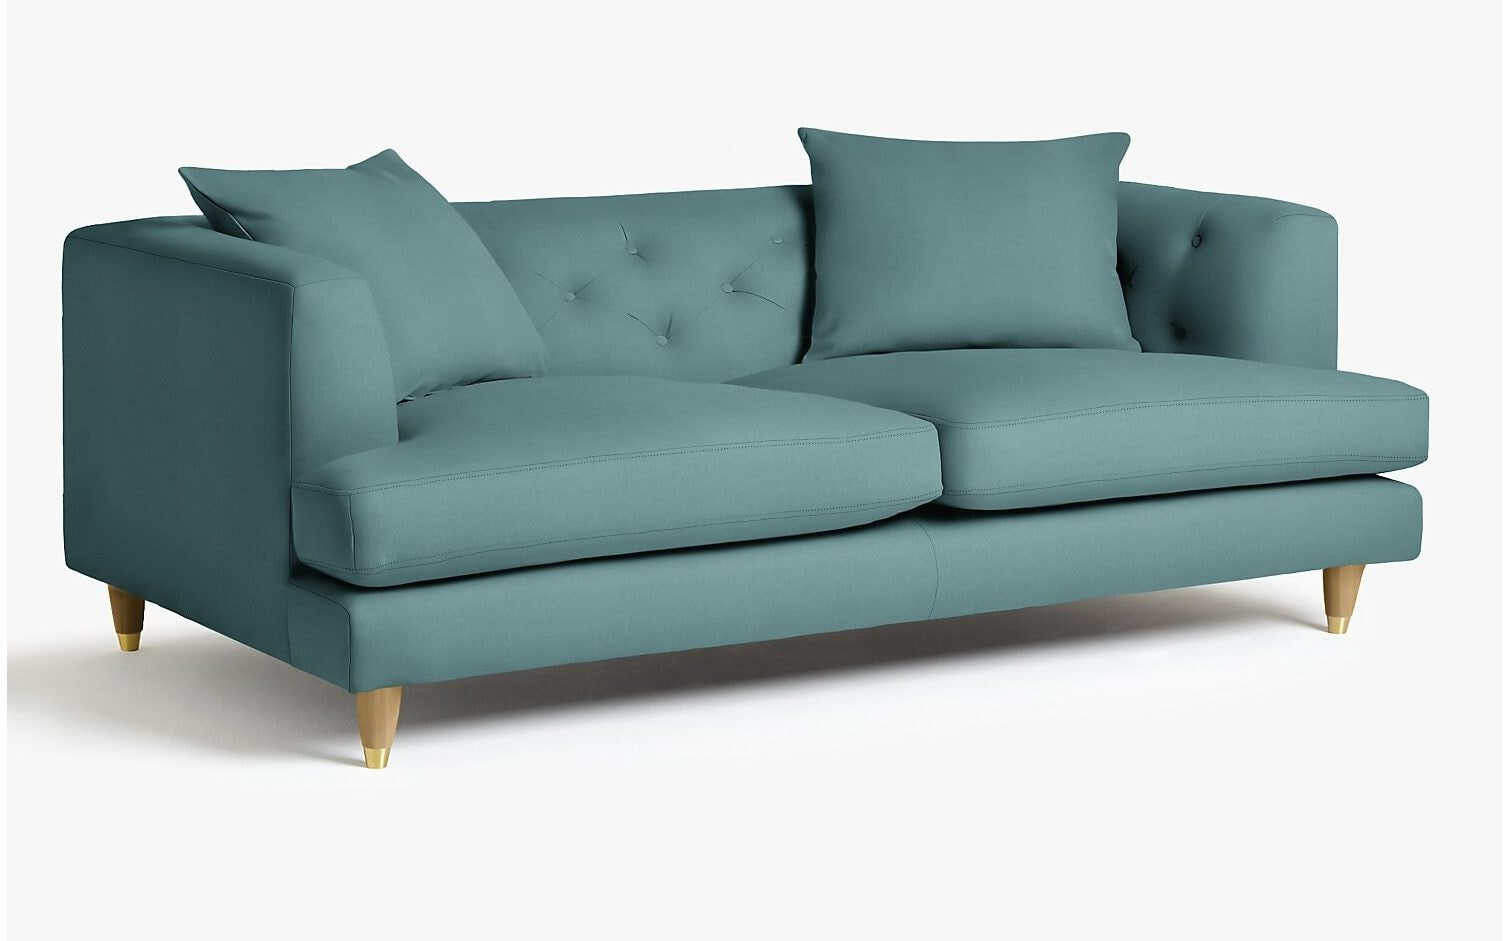 Made Sofa Reviews 17 Of The Best Sofas And Couches To Buy For All Budgets